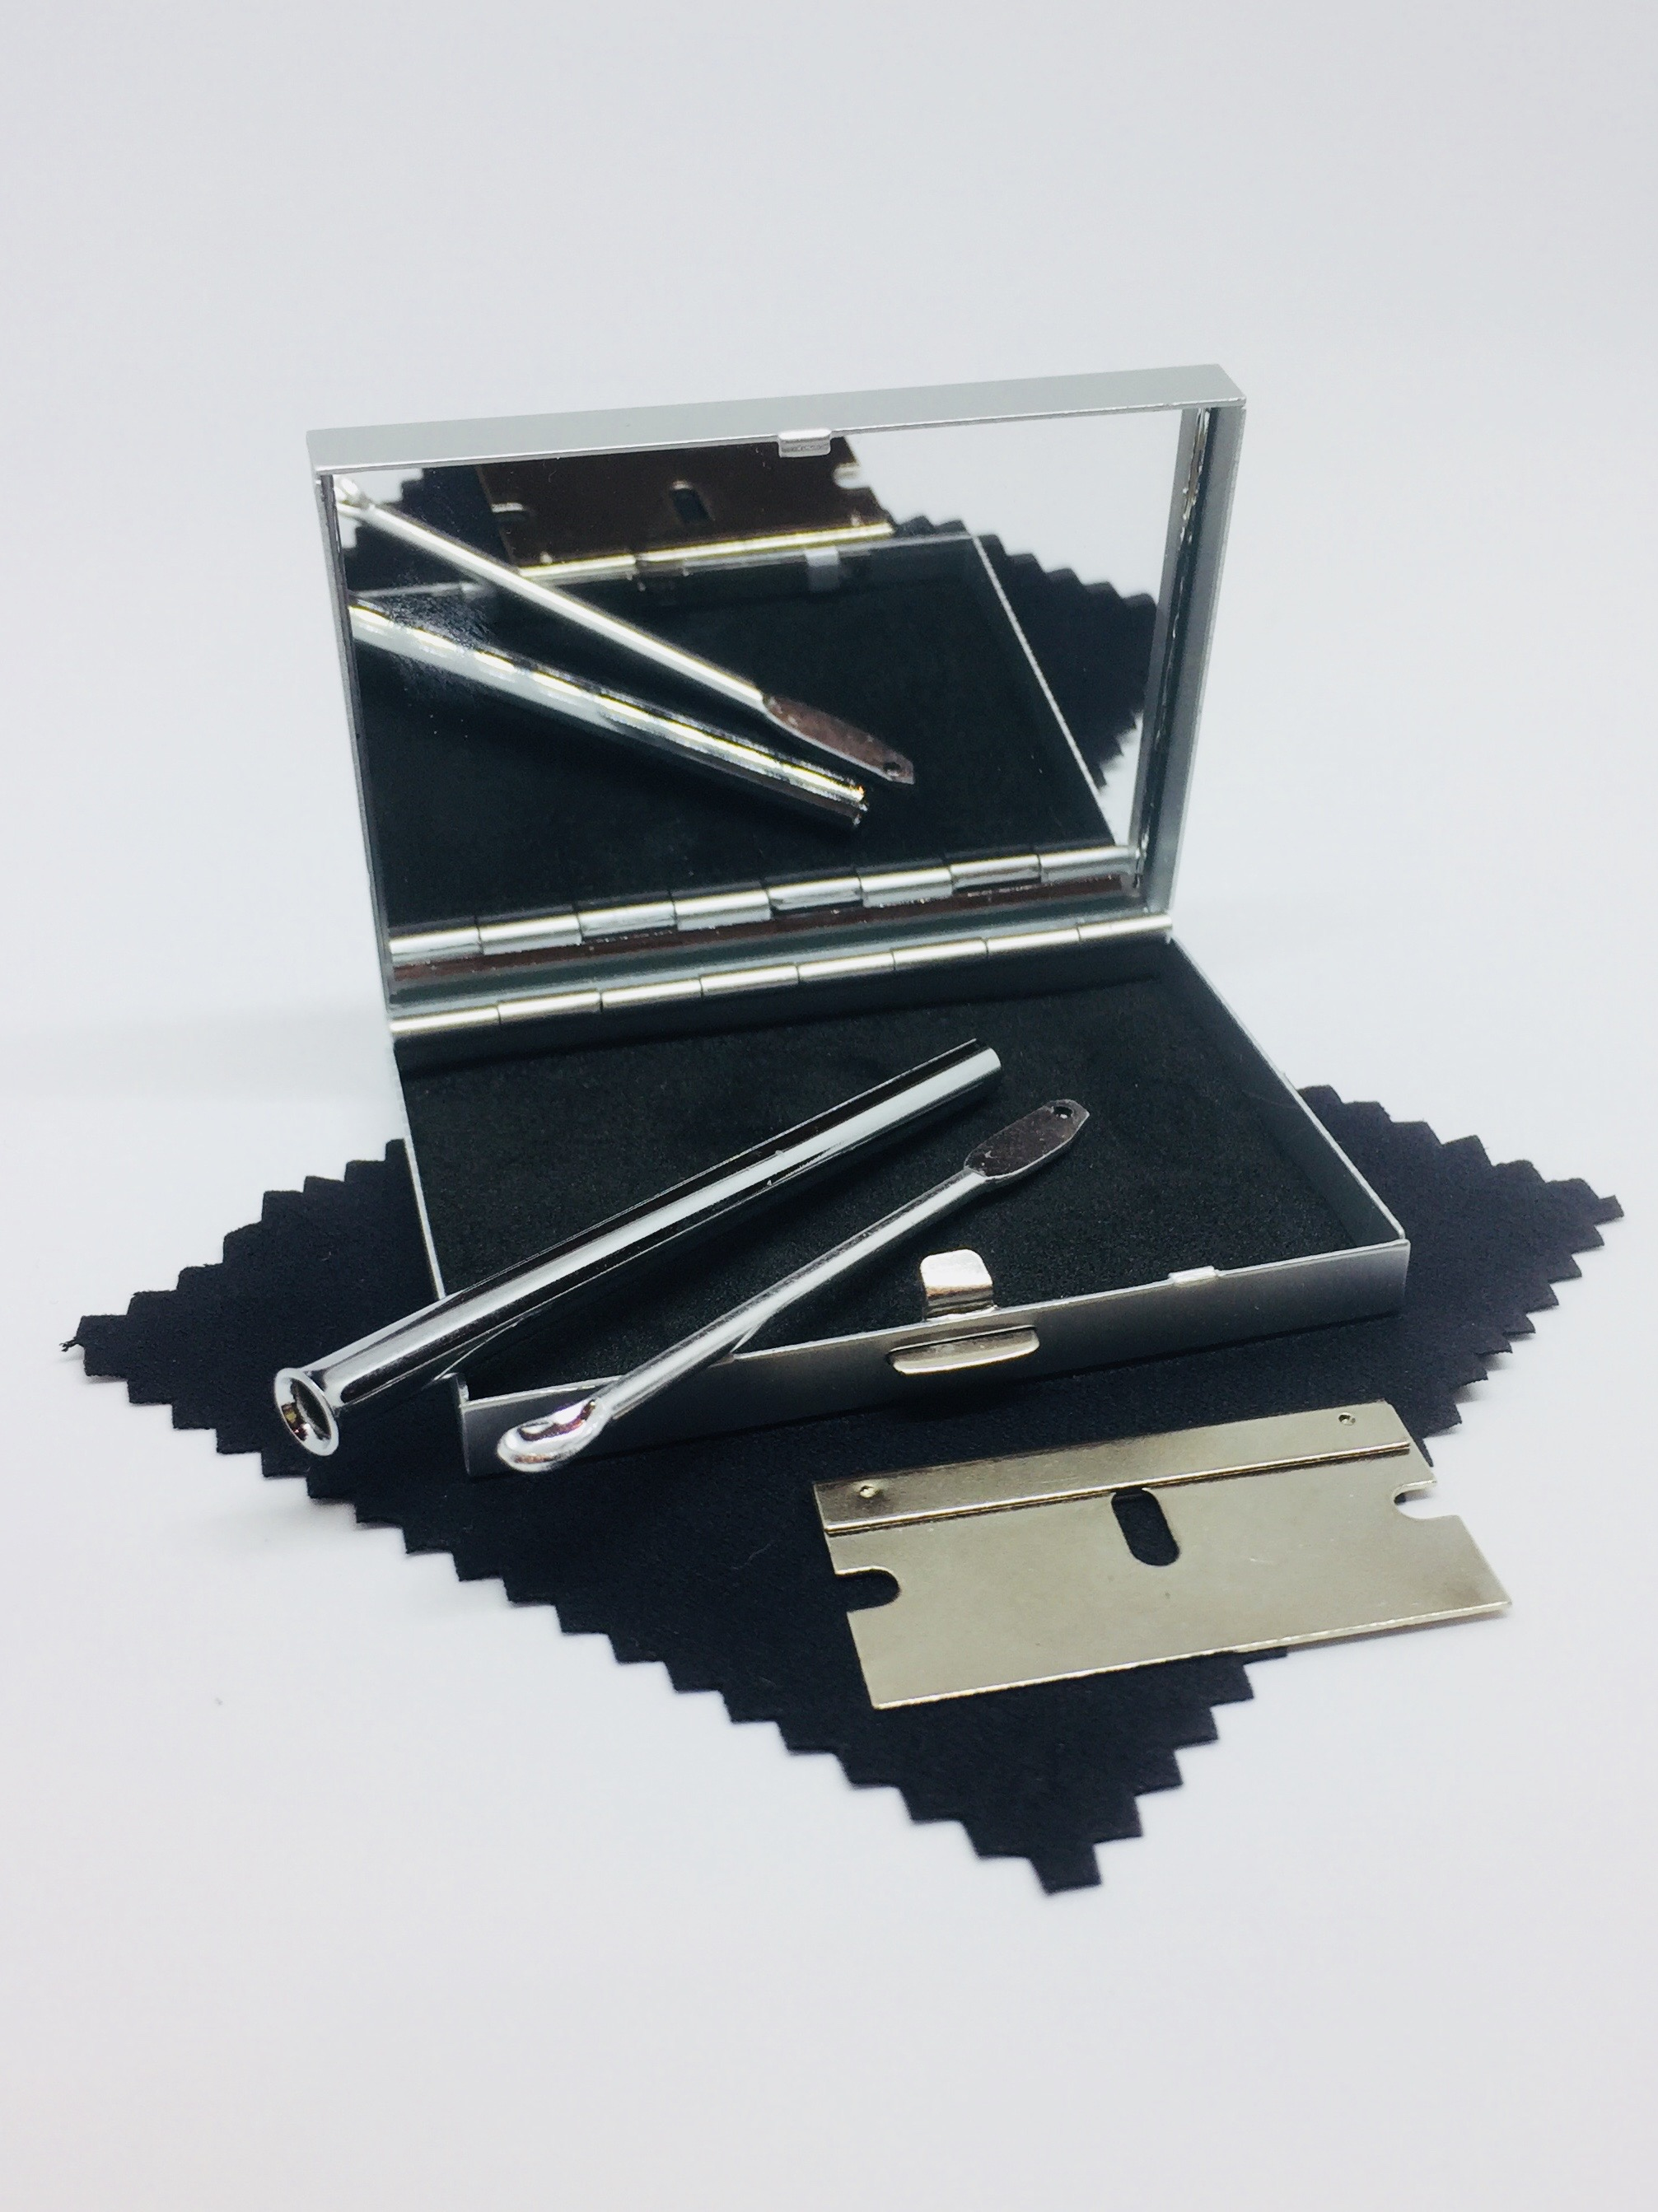 Snuff Snorting Kit - Silver Metal Case